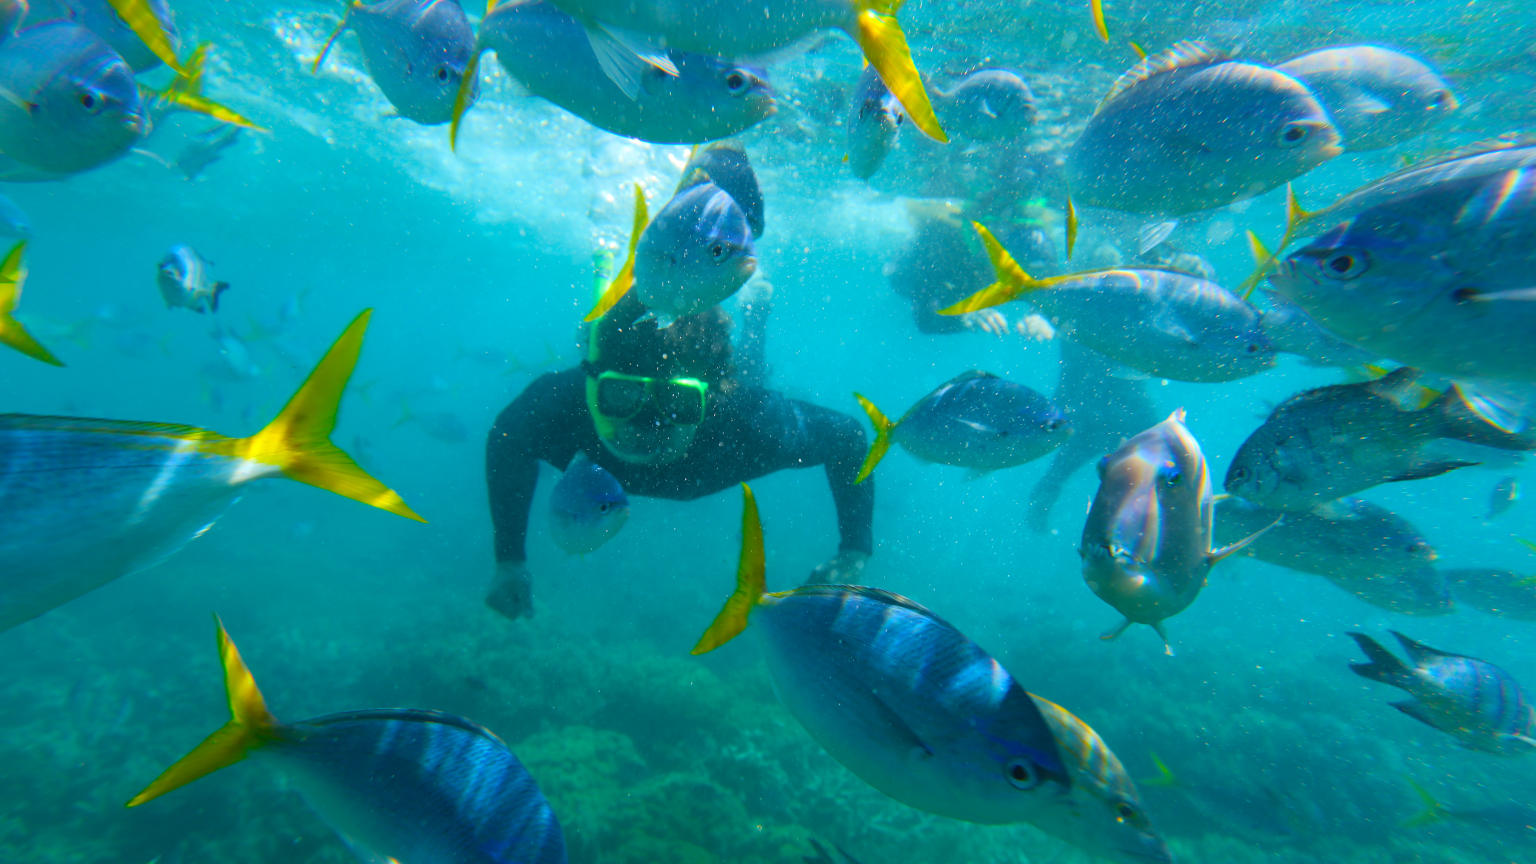 Australia-Whitsunday-Islands-Snorkelling-Fish-Traveller-Leo-Tamburri